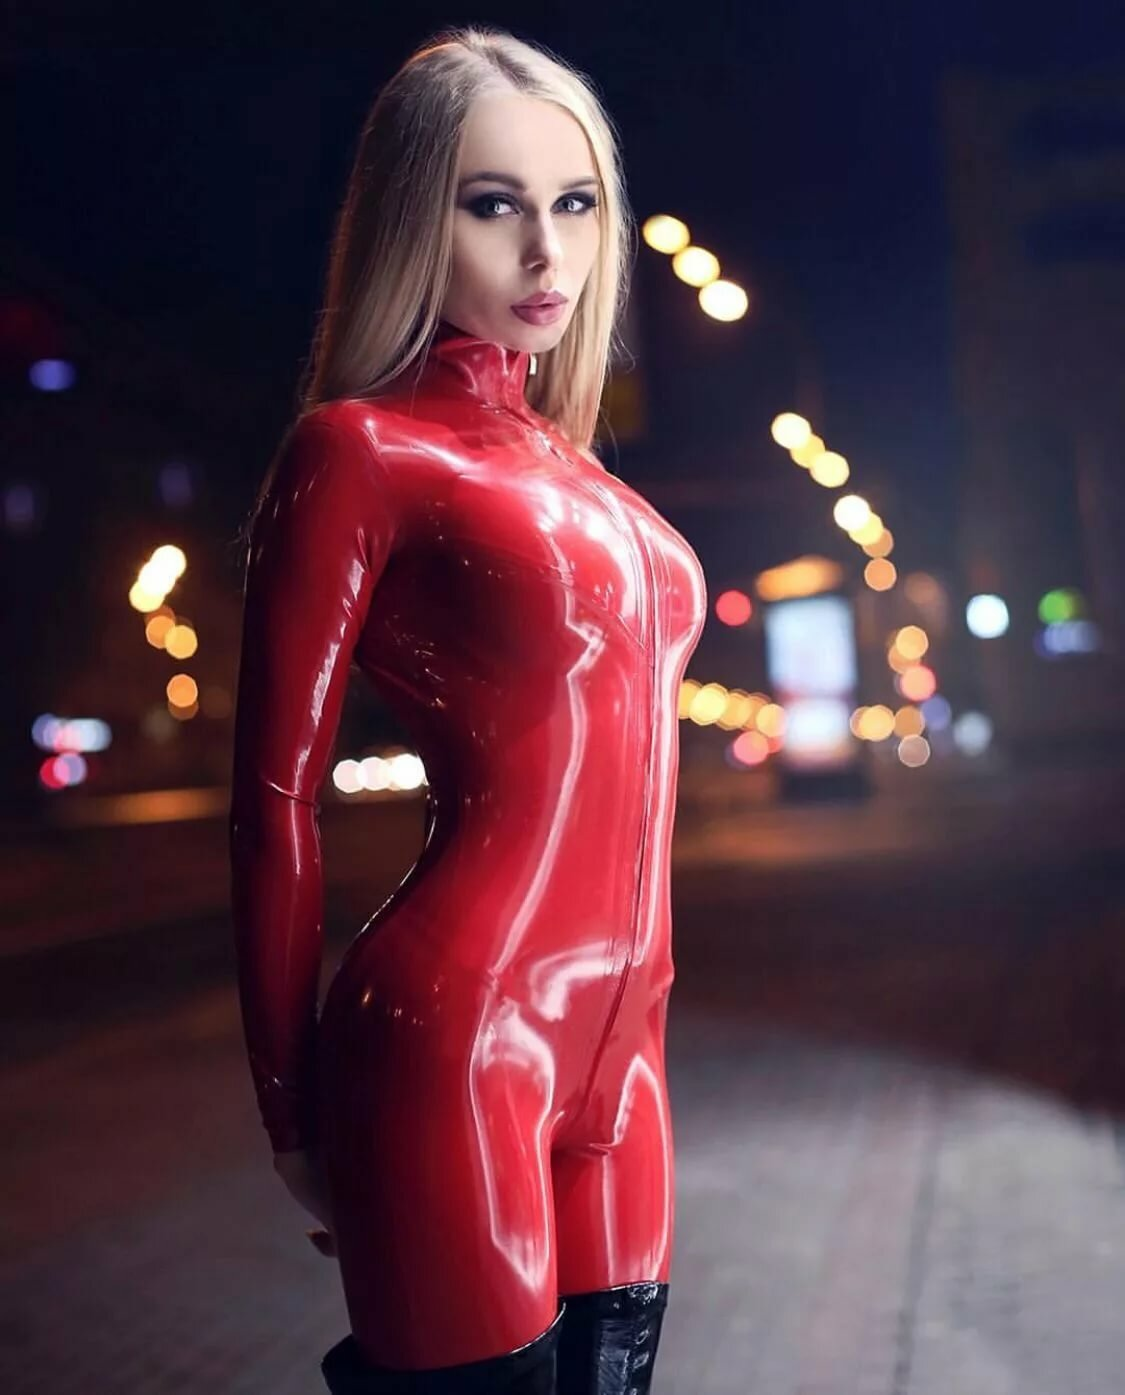 klett-latex-style-moms-pussy-leaking